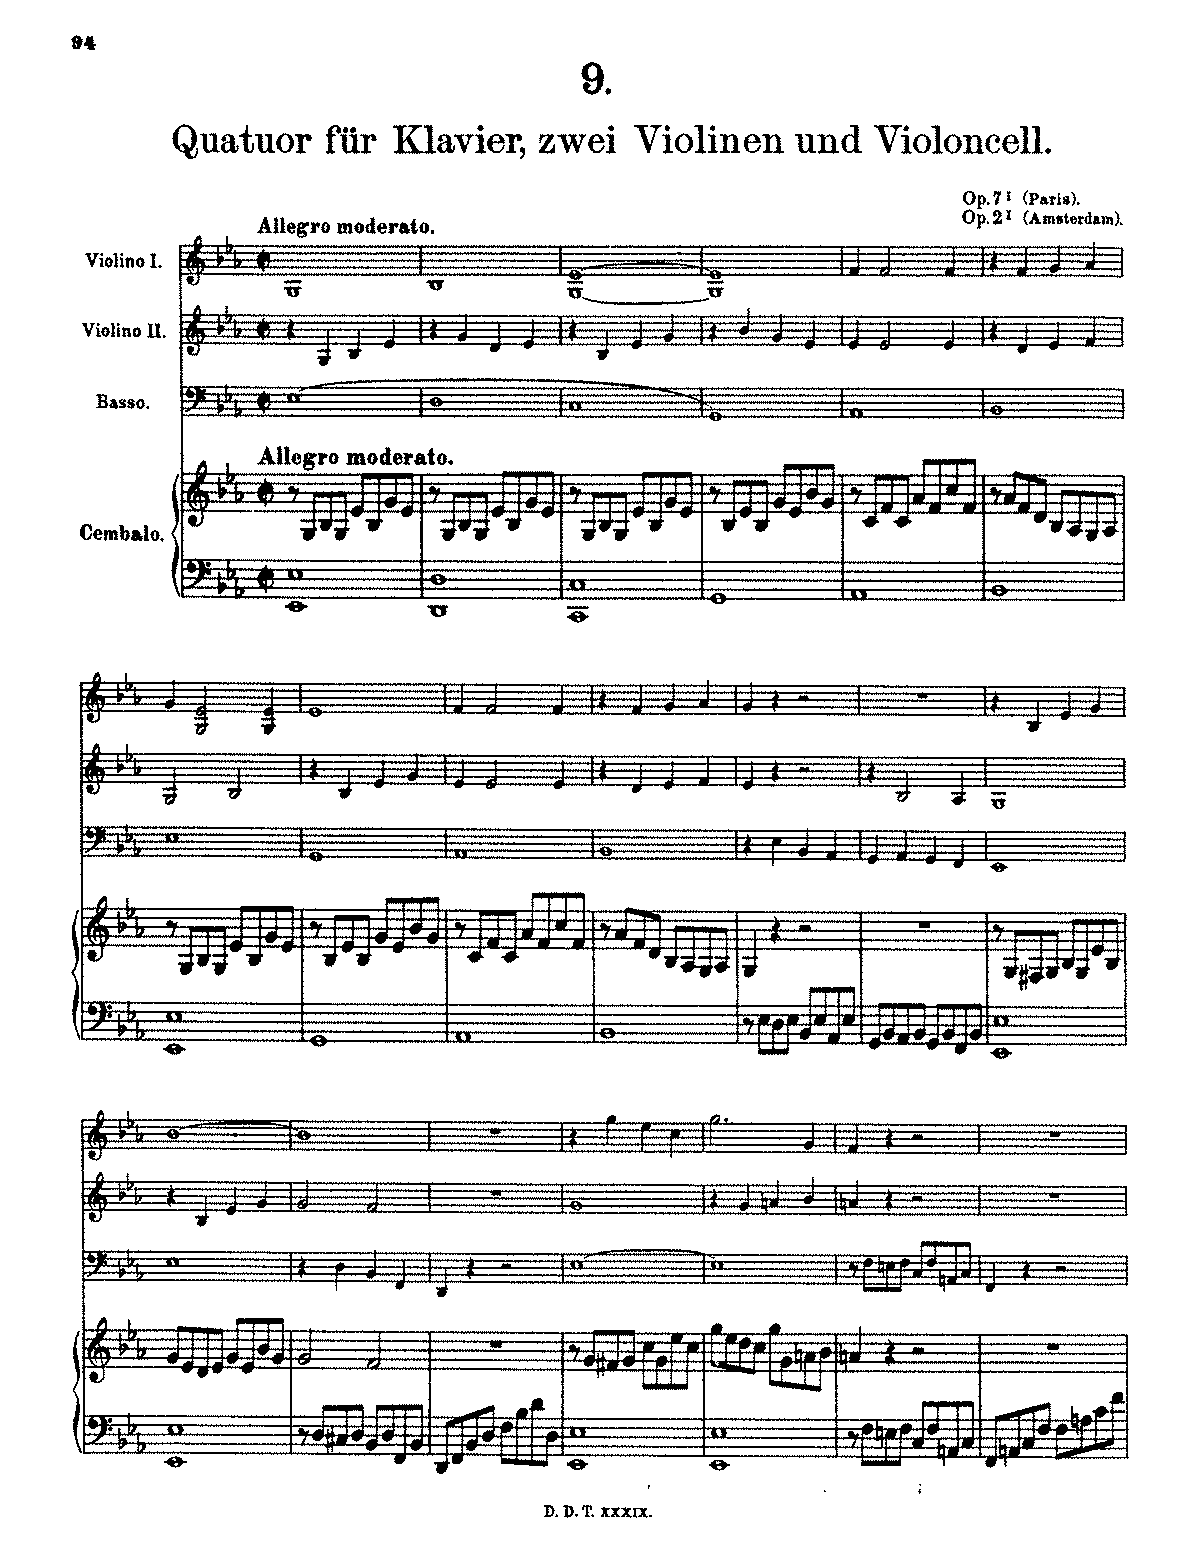 PMLP236090-Schobert Quartet klavier 2violins cello Op7 Op2 No1.pdf